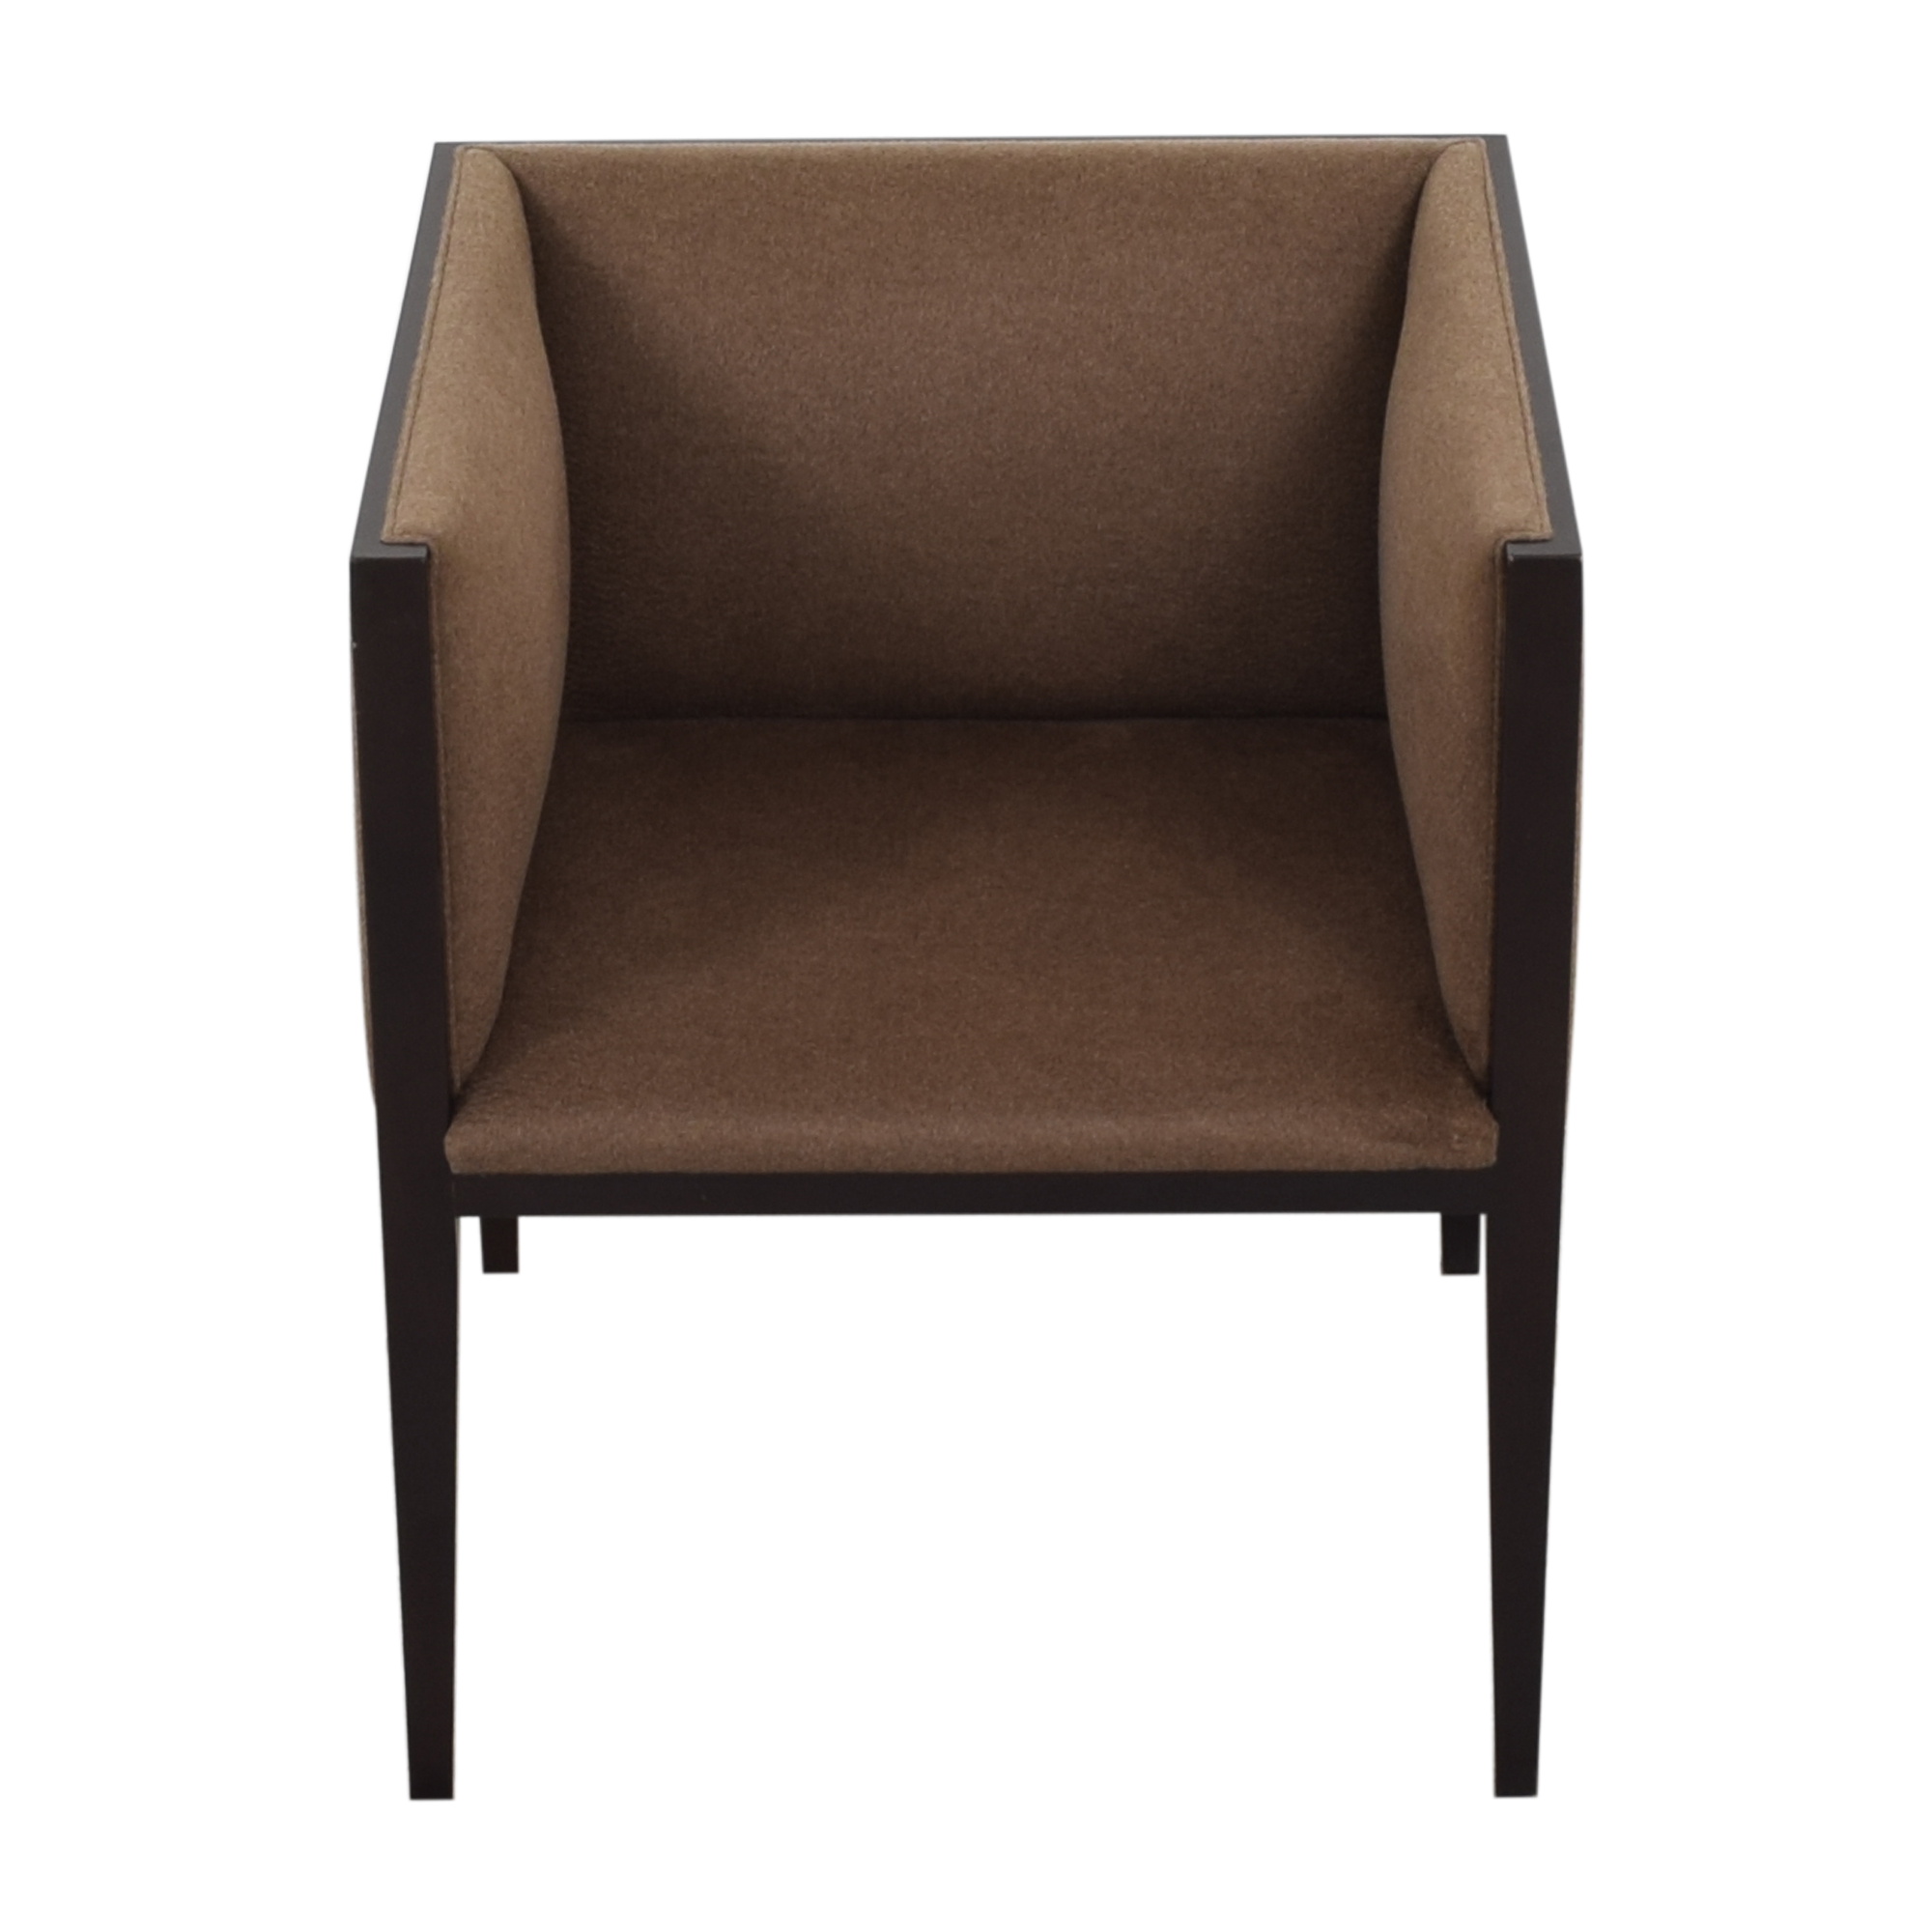 buy Hudson Furniture & Bedding Hudson Furniture & Bedding Tuxedo Accent Chair online